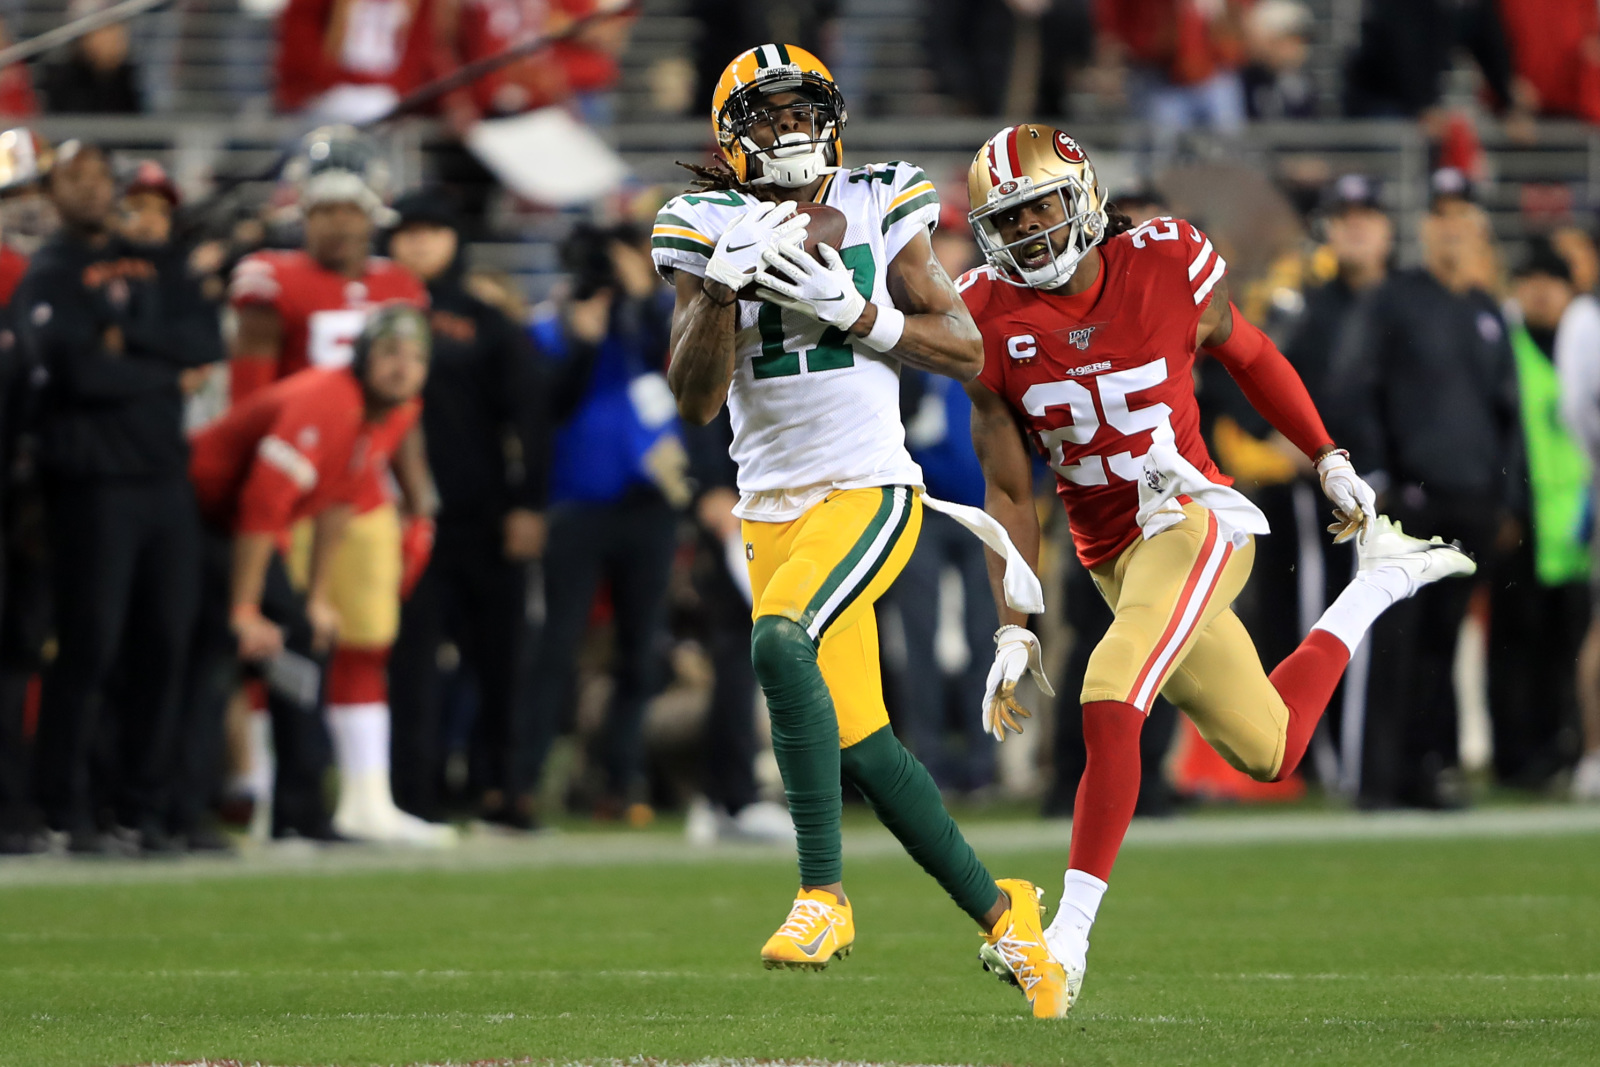 Espn Low On Packers Offensive Weapons Entering 2020 Season